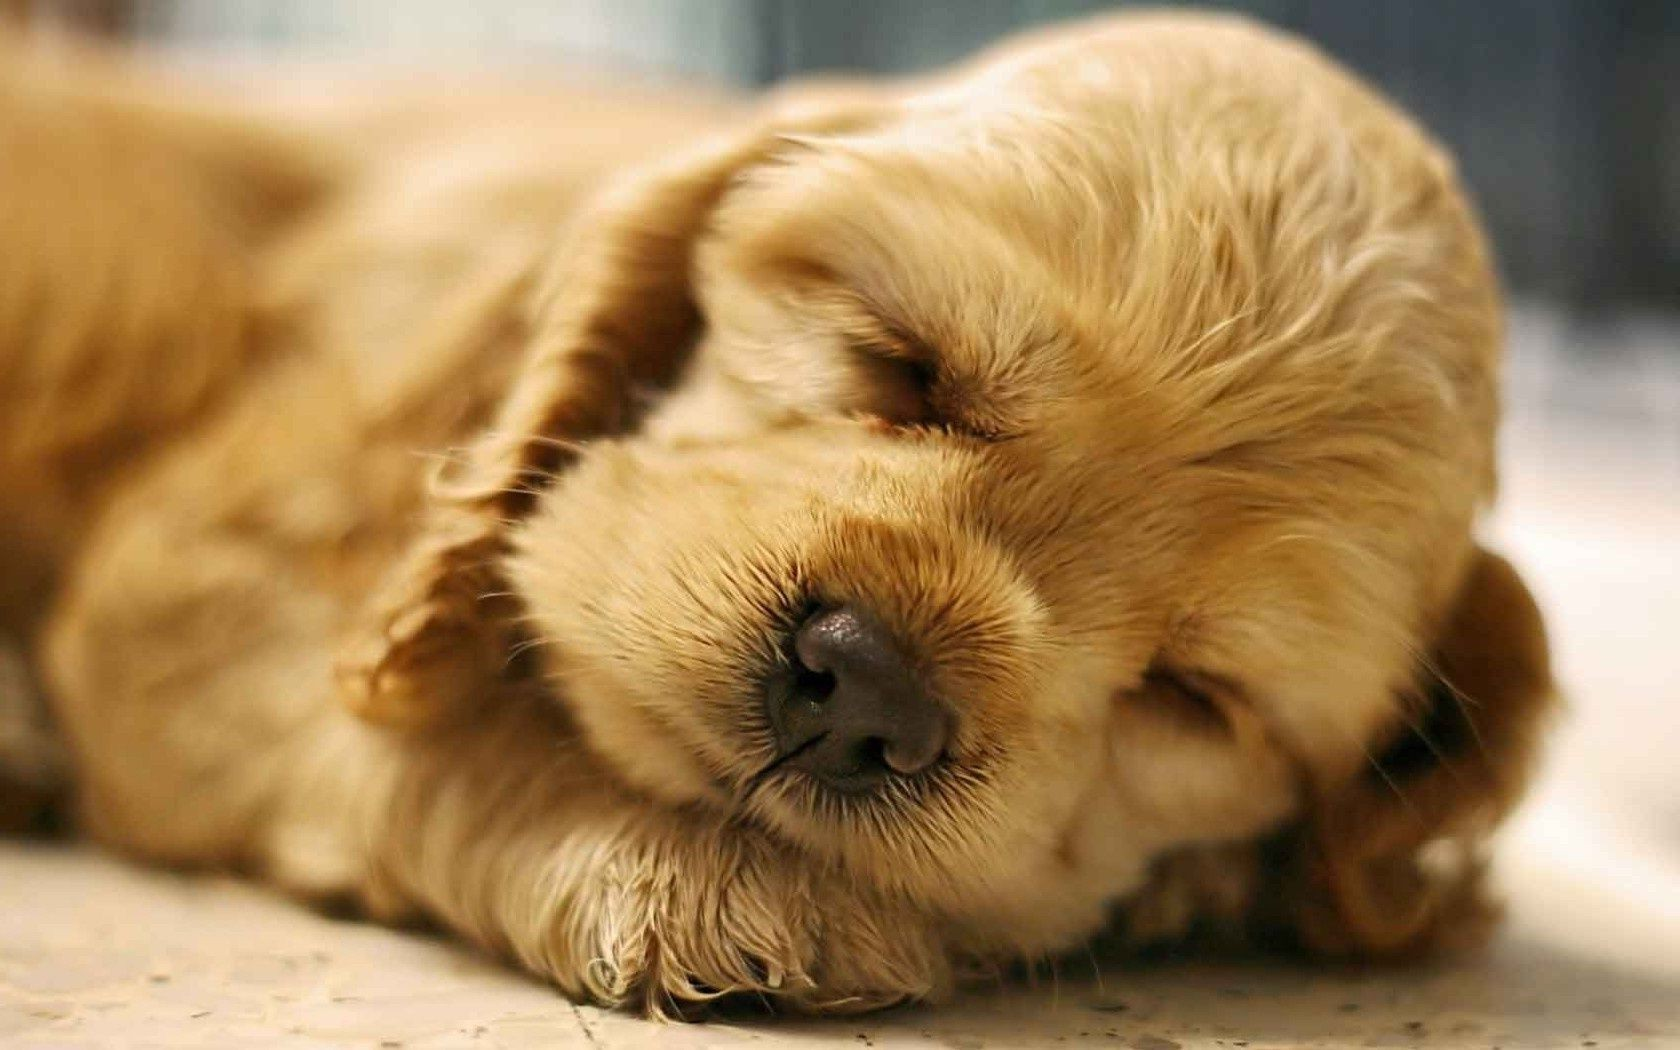 Red puppy sleeping sweetly